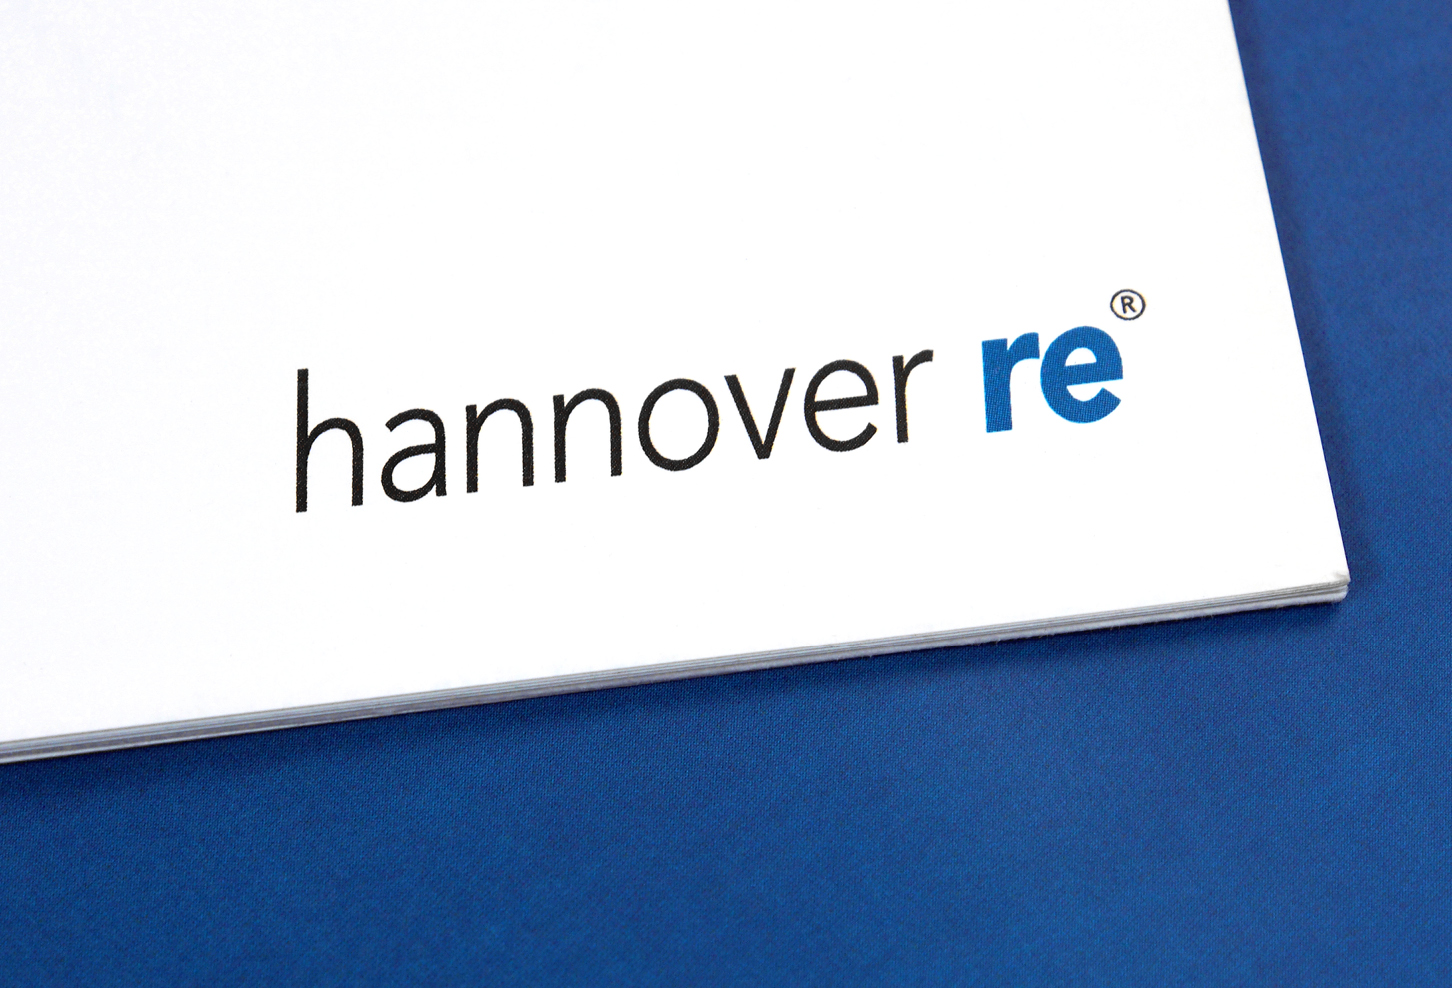 The Hannover Re logo on a white and blue background